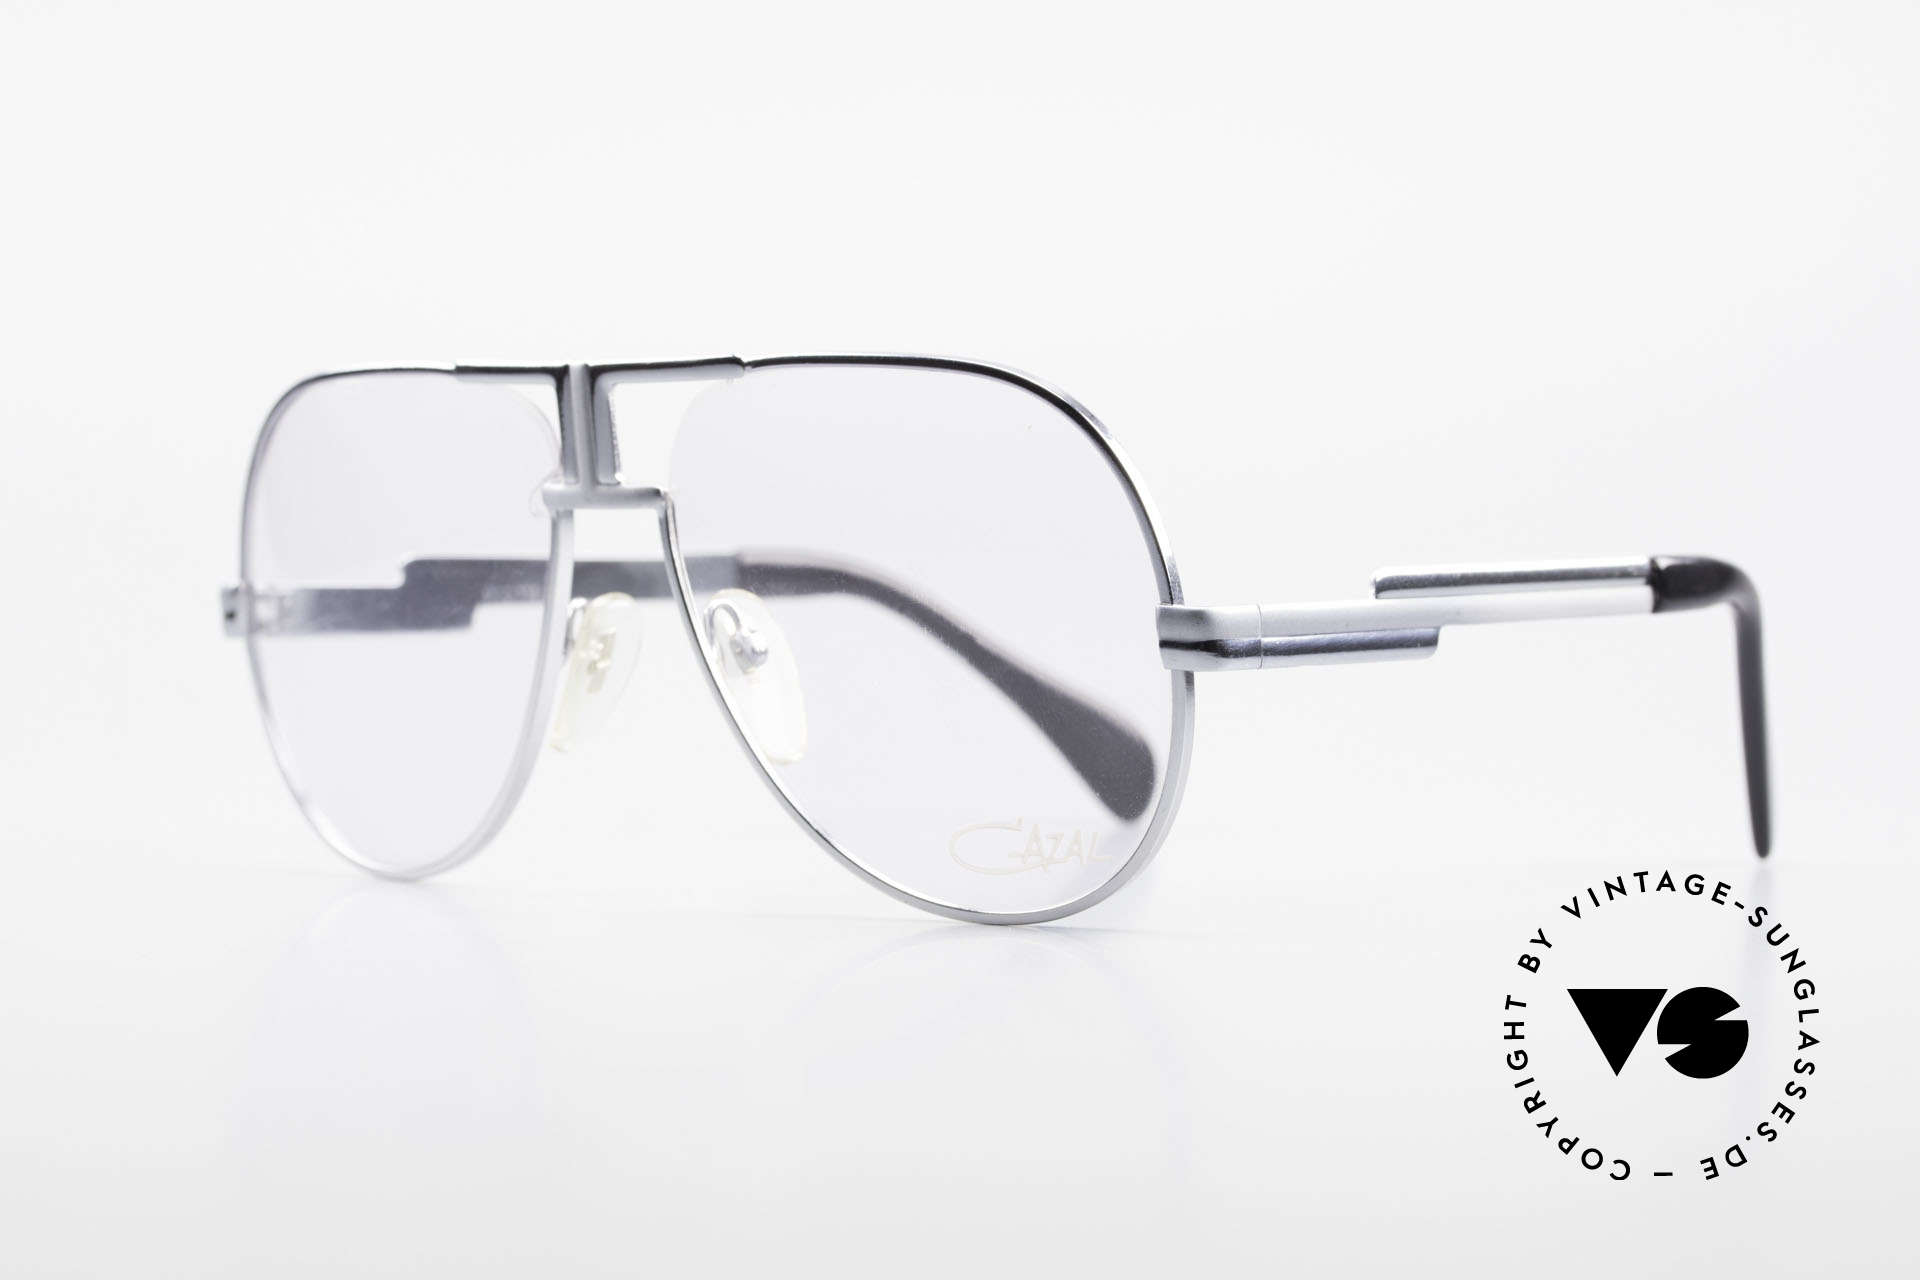 Cazal 702 Ultra Rare 70's Cazal Glasses, unusual and well balanced frame finish, size 58/16, Made for Men